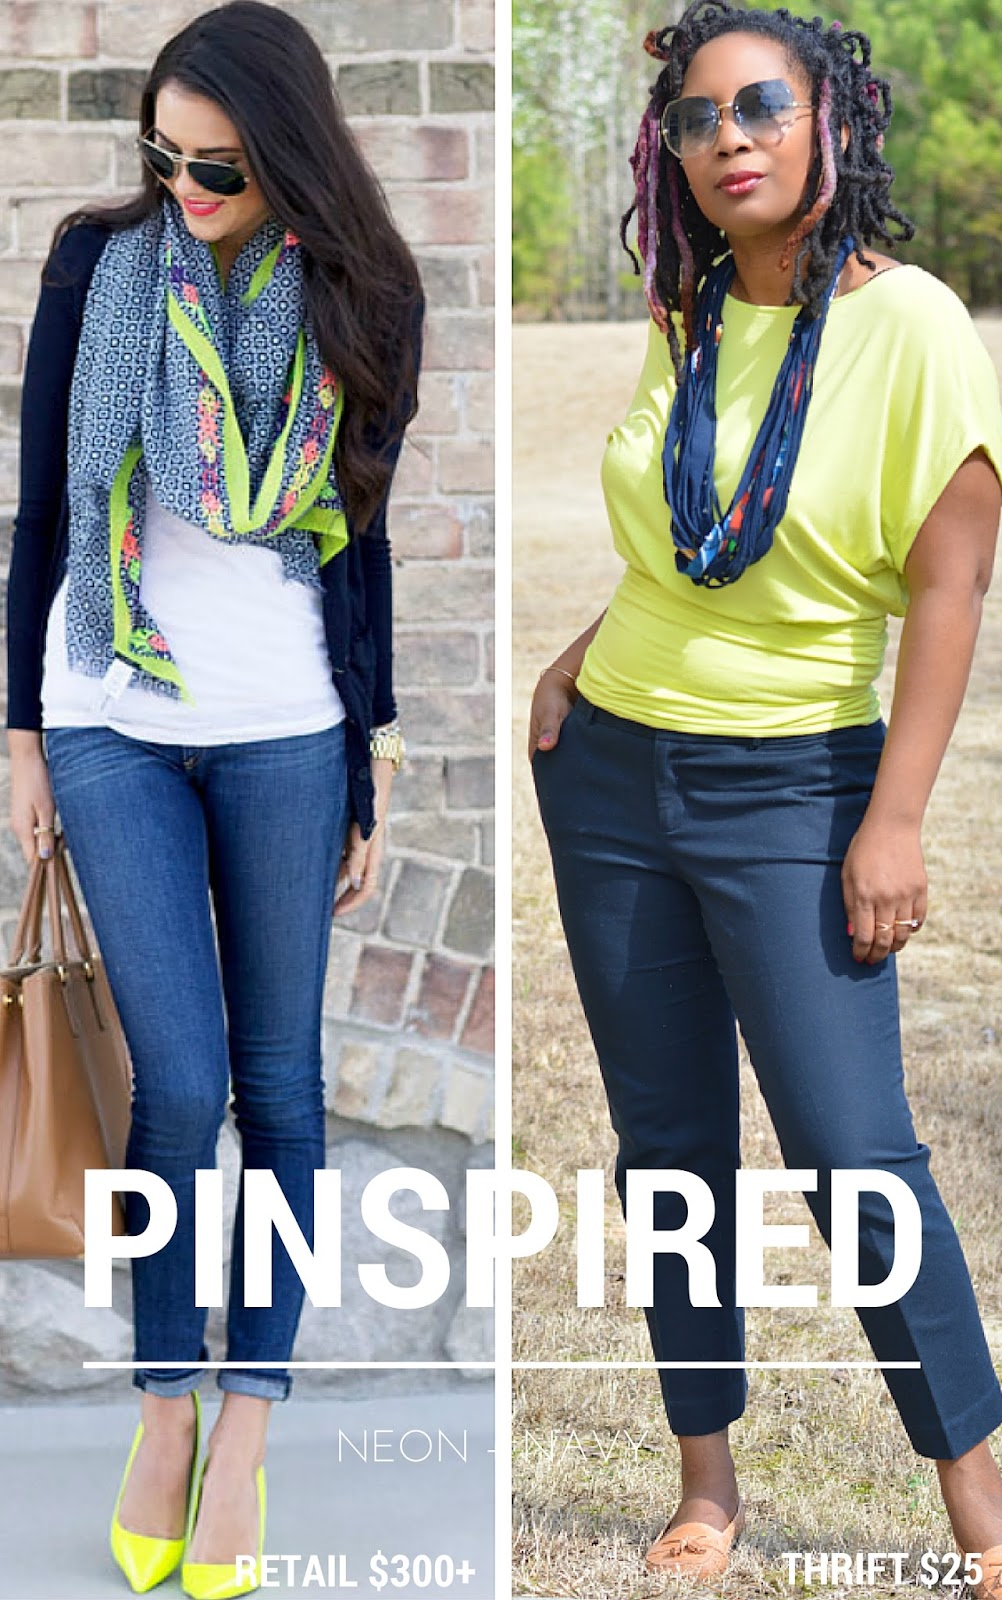 A Pinterest inspired thrift store outfit in neon and navy.